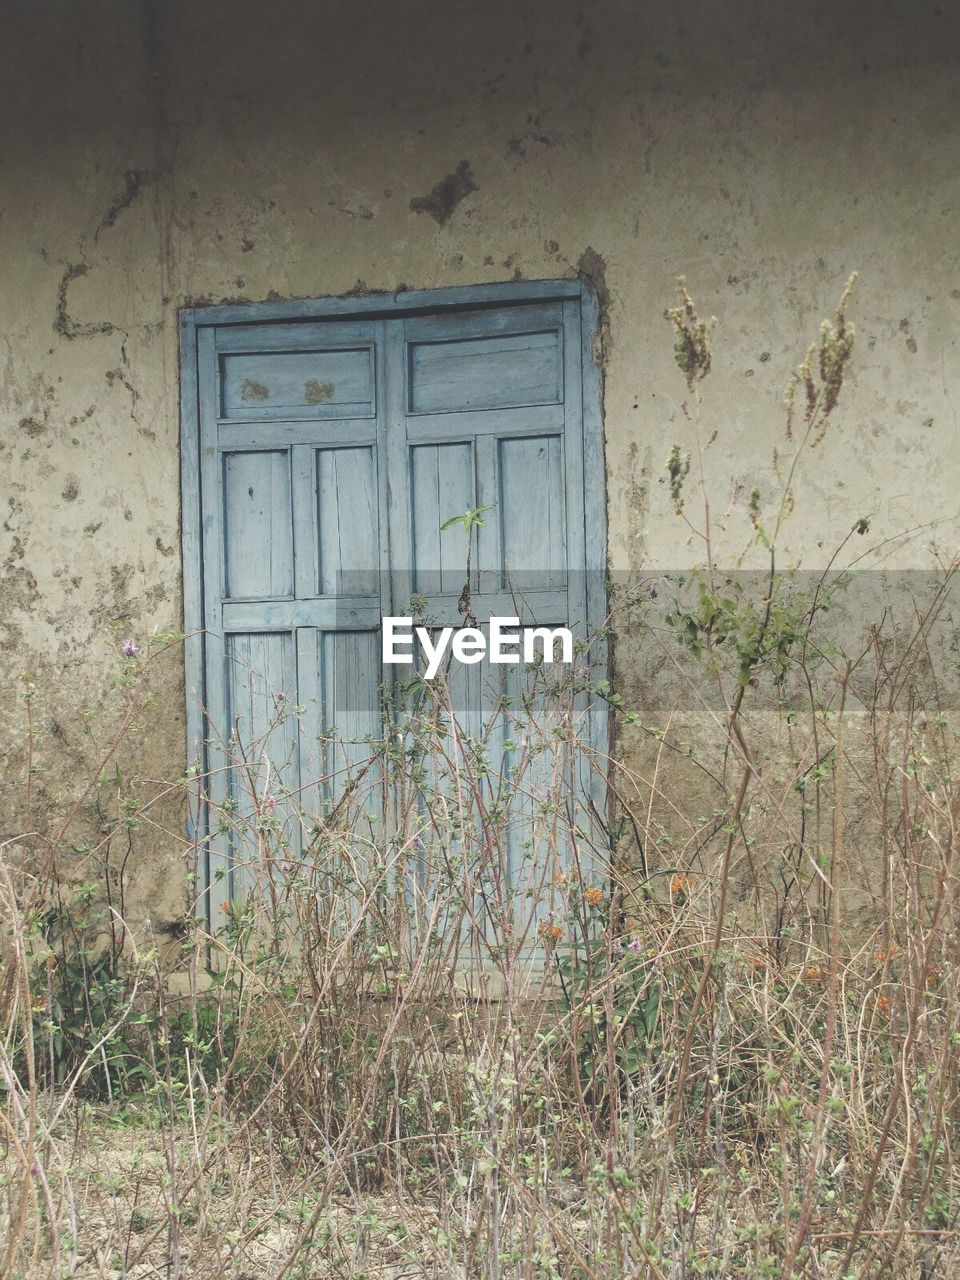 door, window, weathered, architecture, abandoned, house, entrance, doorway, built structure, no people, plant, damaged, day, bad condition, building exterior, open door, close-up, outdoors